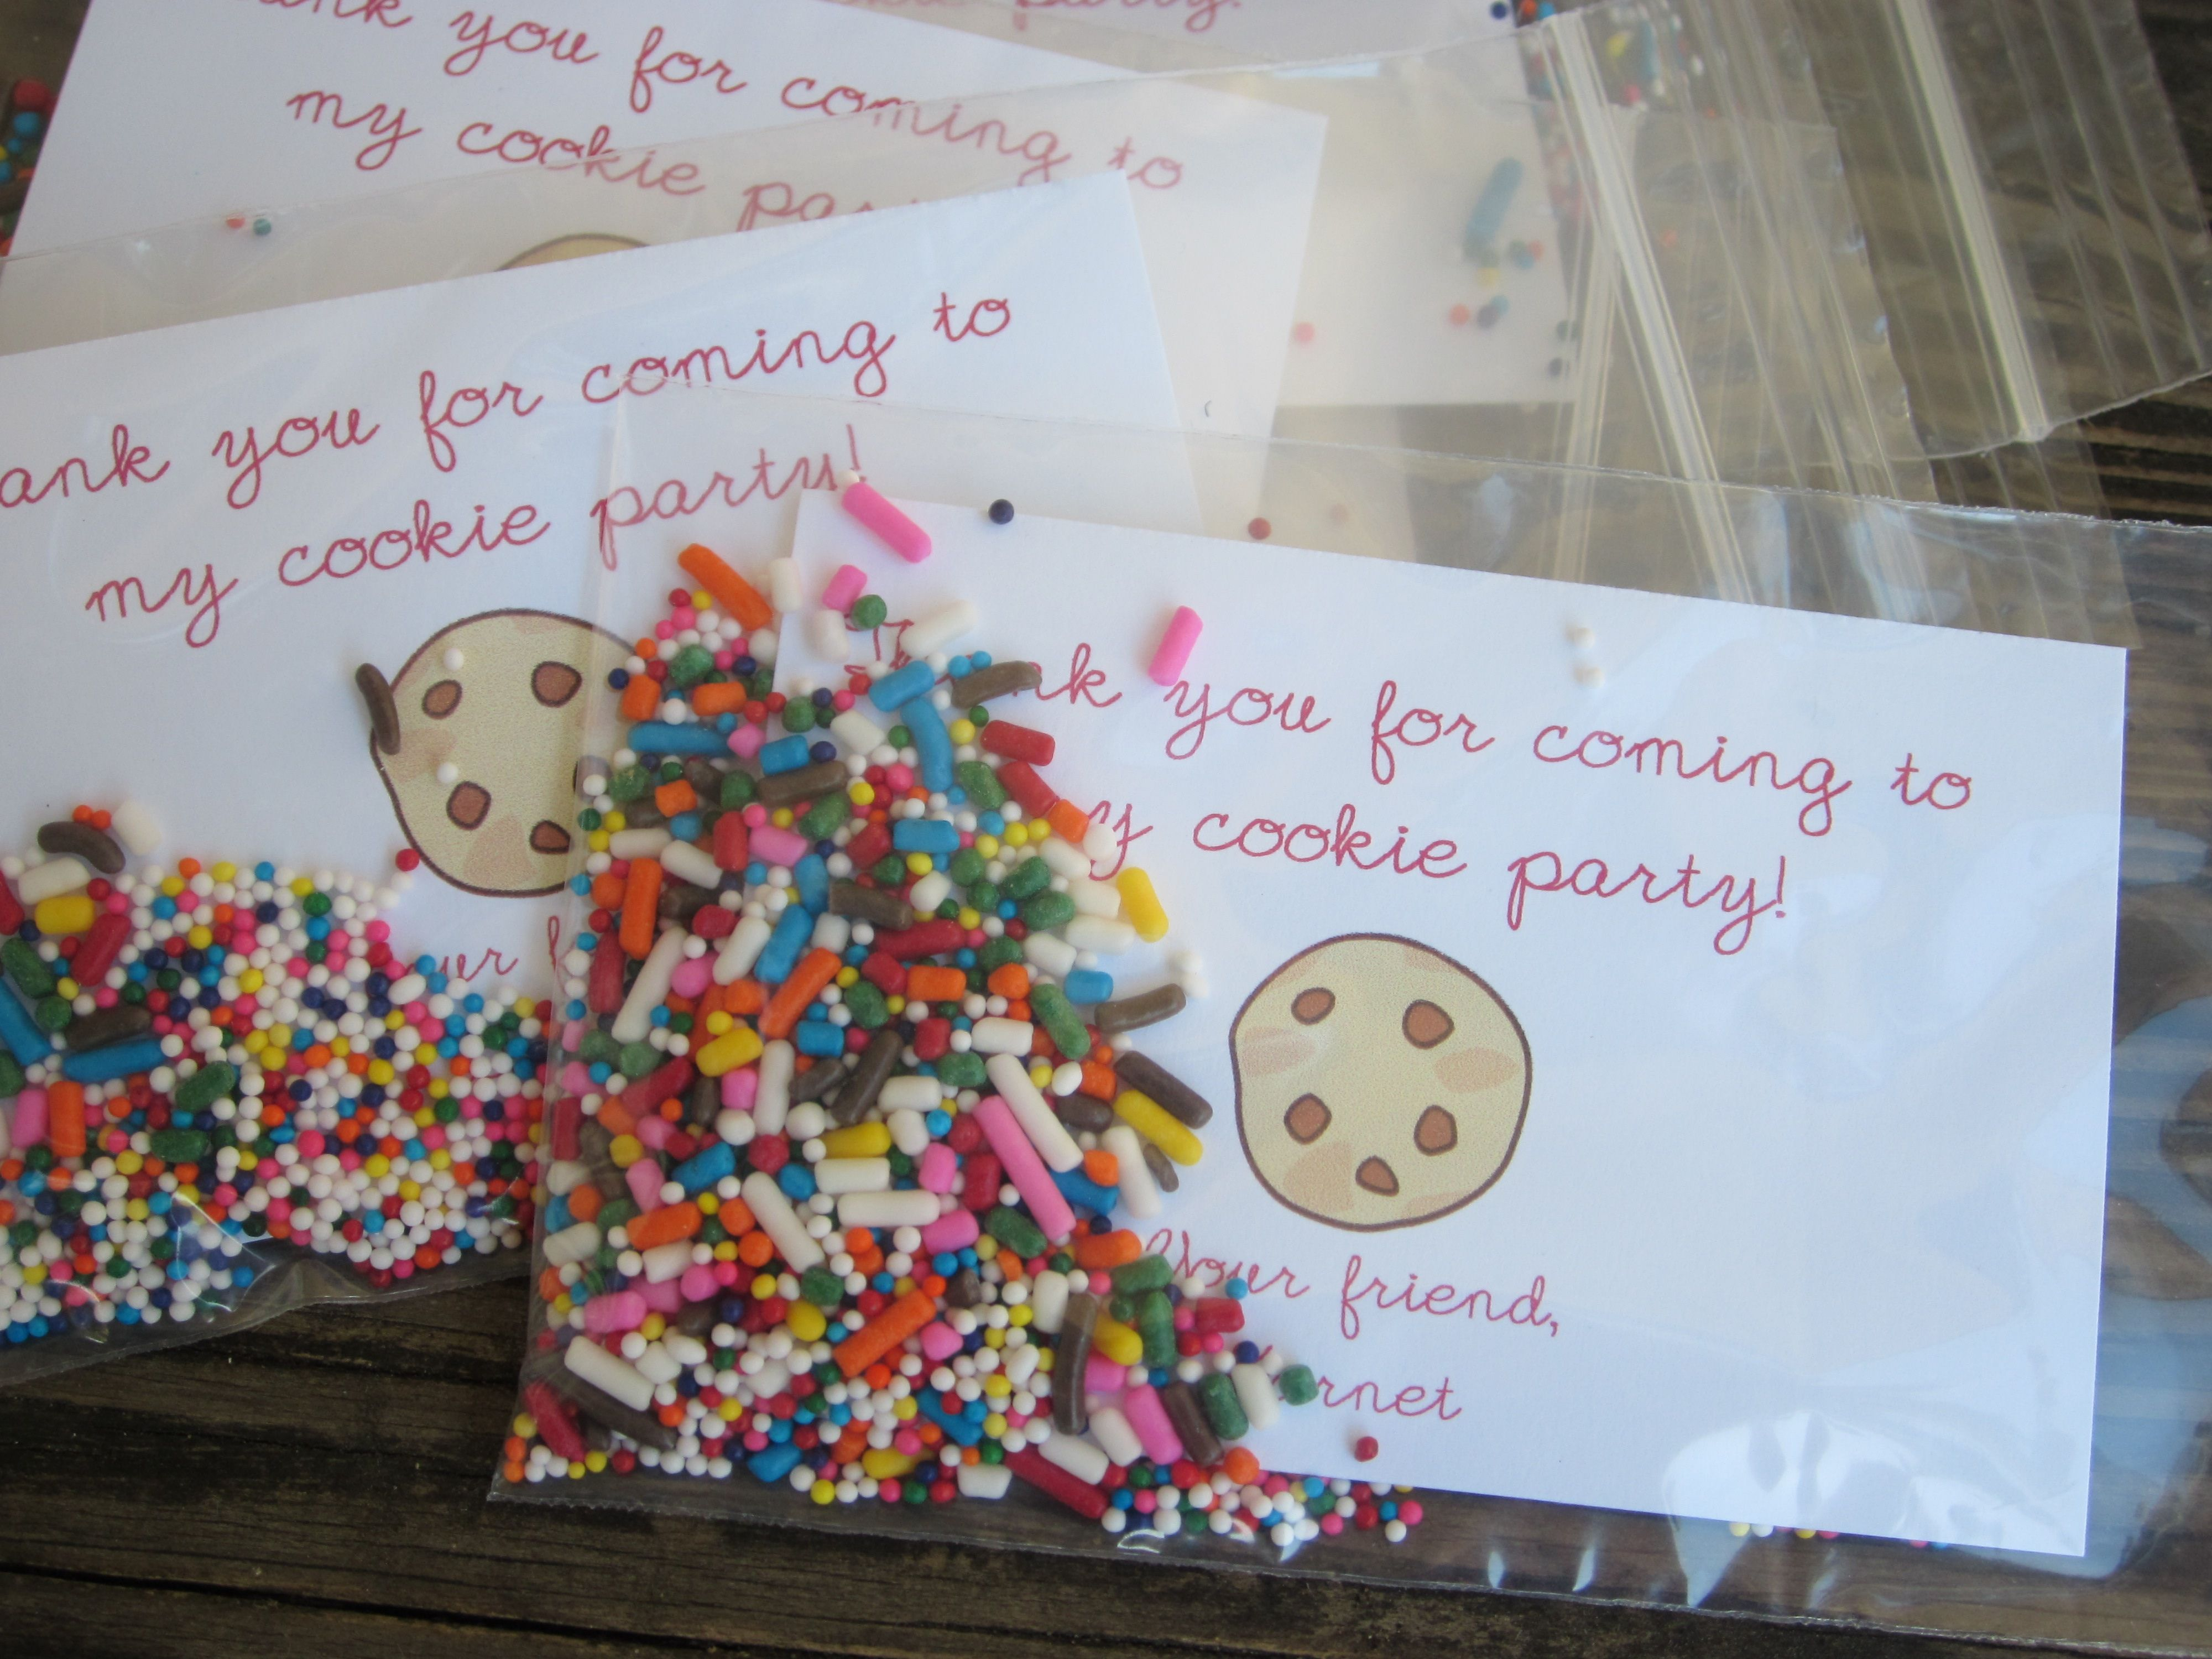 Cookie decorating party ideas - Cookie Decorating Party Favors Send Little Thank You Sprinkles With Any Cookies The Guests Decorated